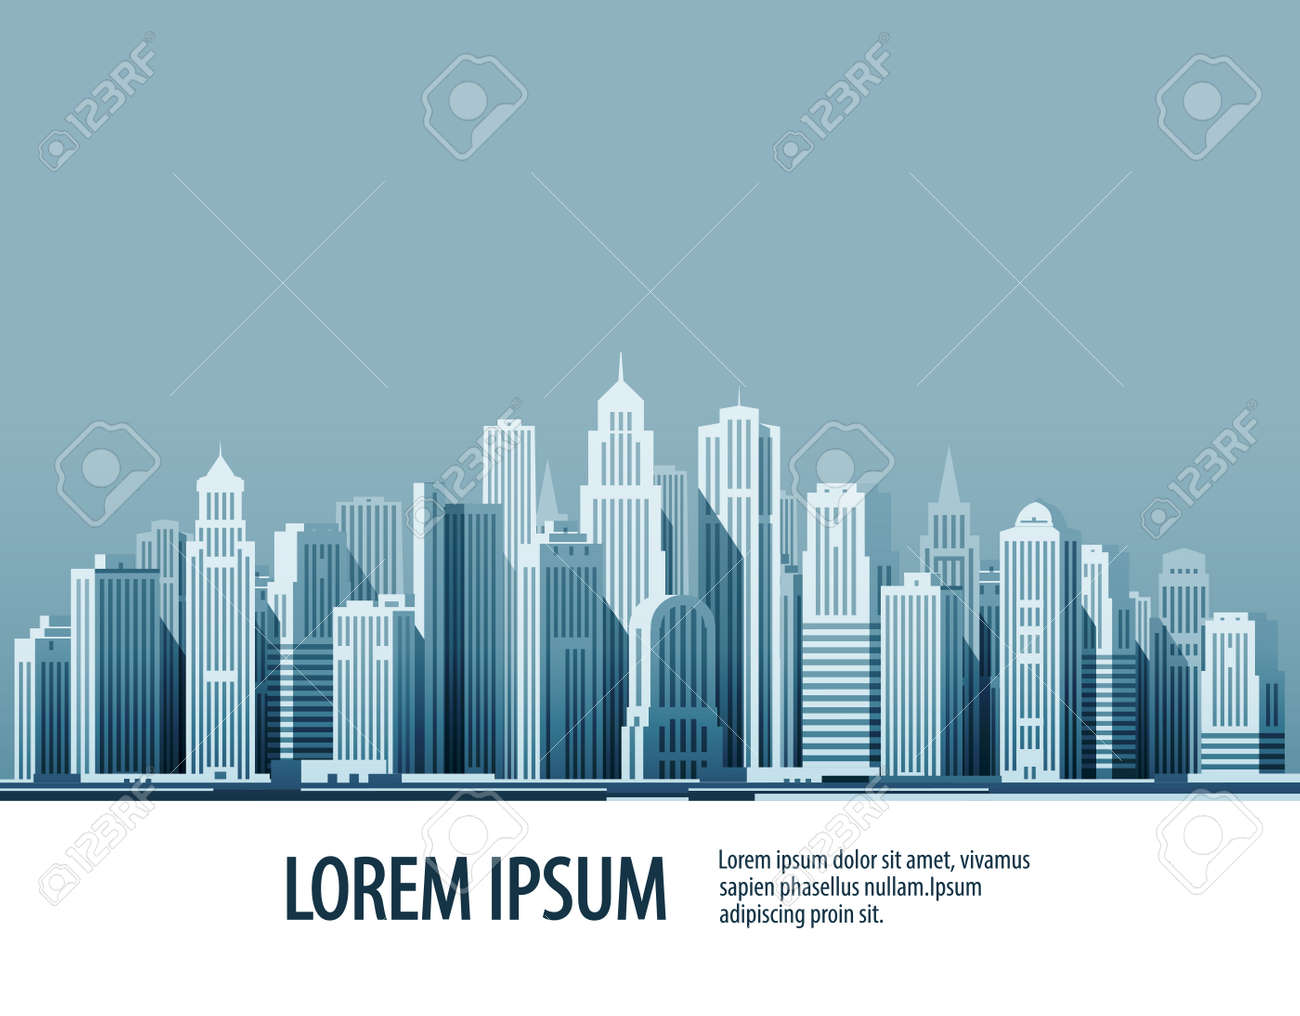 Big city. Architectural building in panoramic view. Vector illustration - 62204615